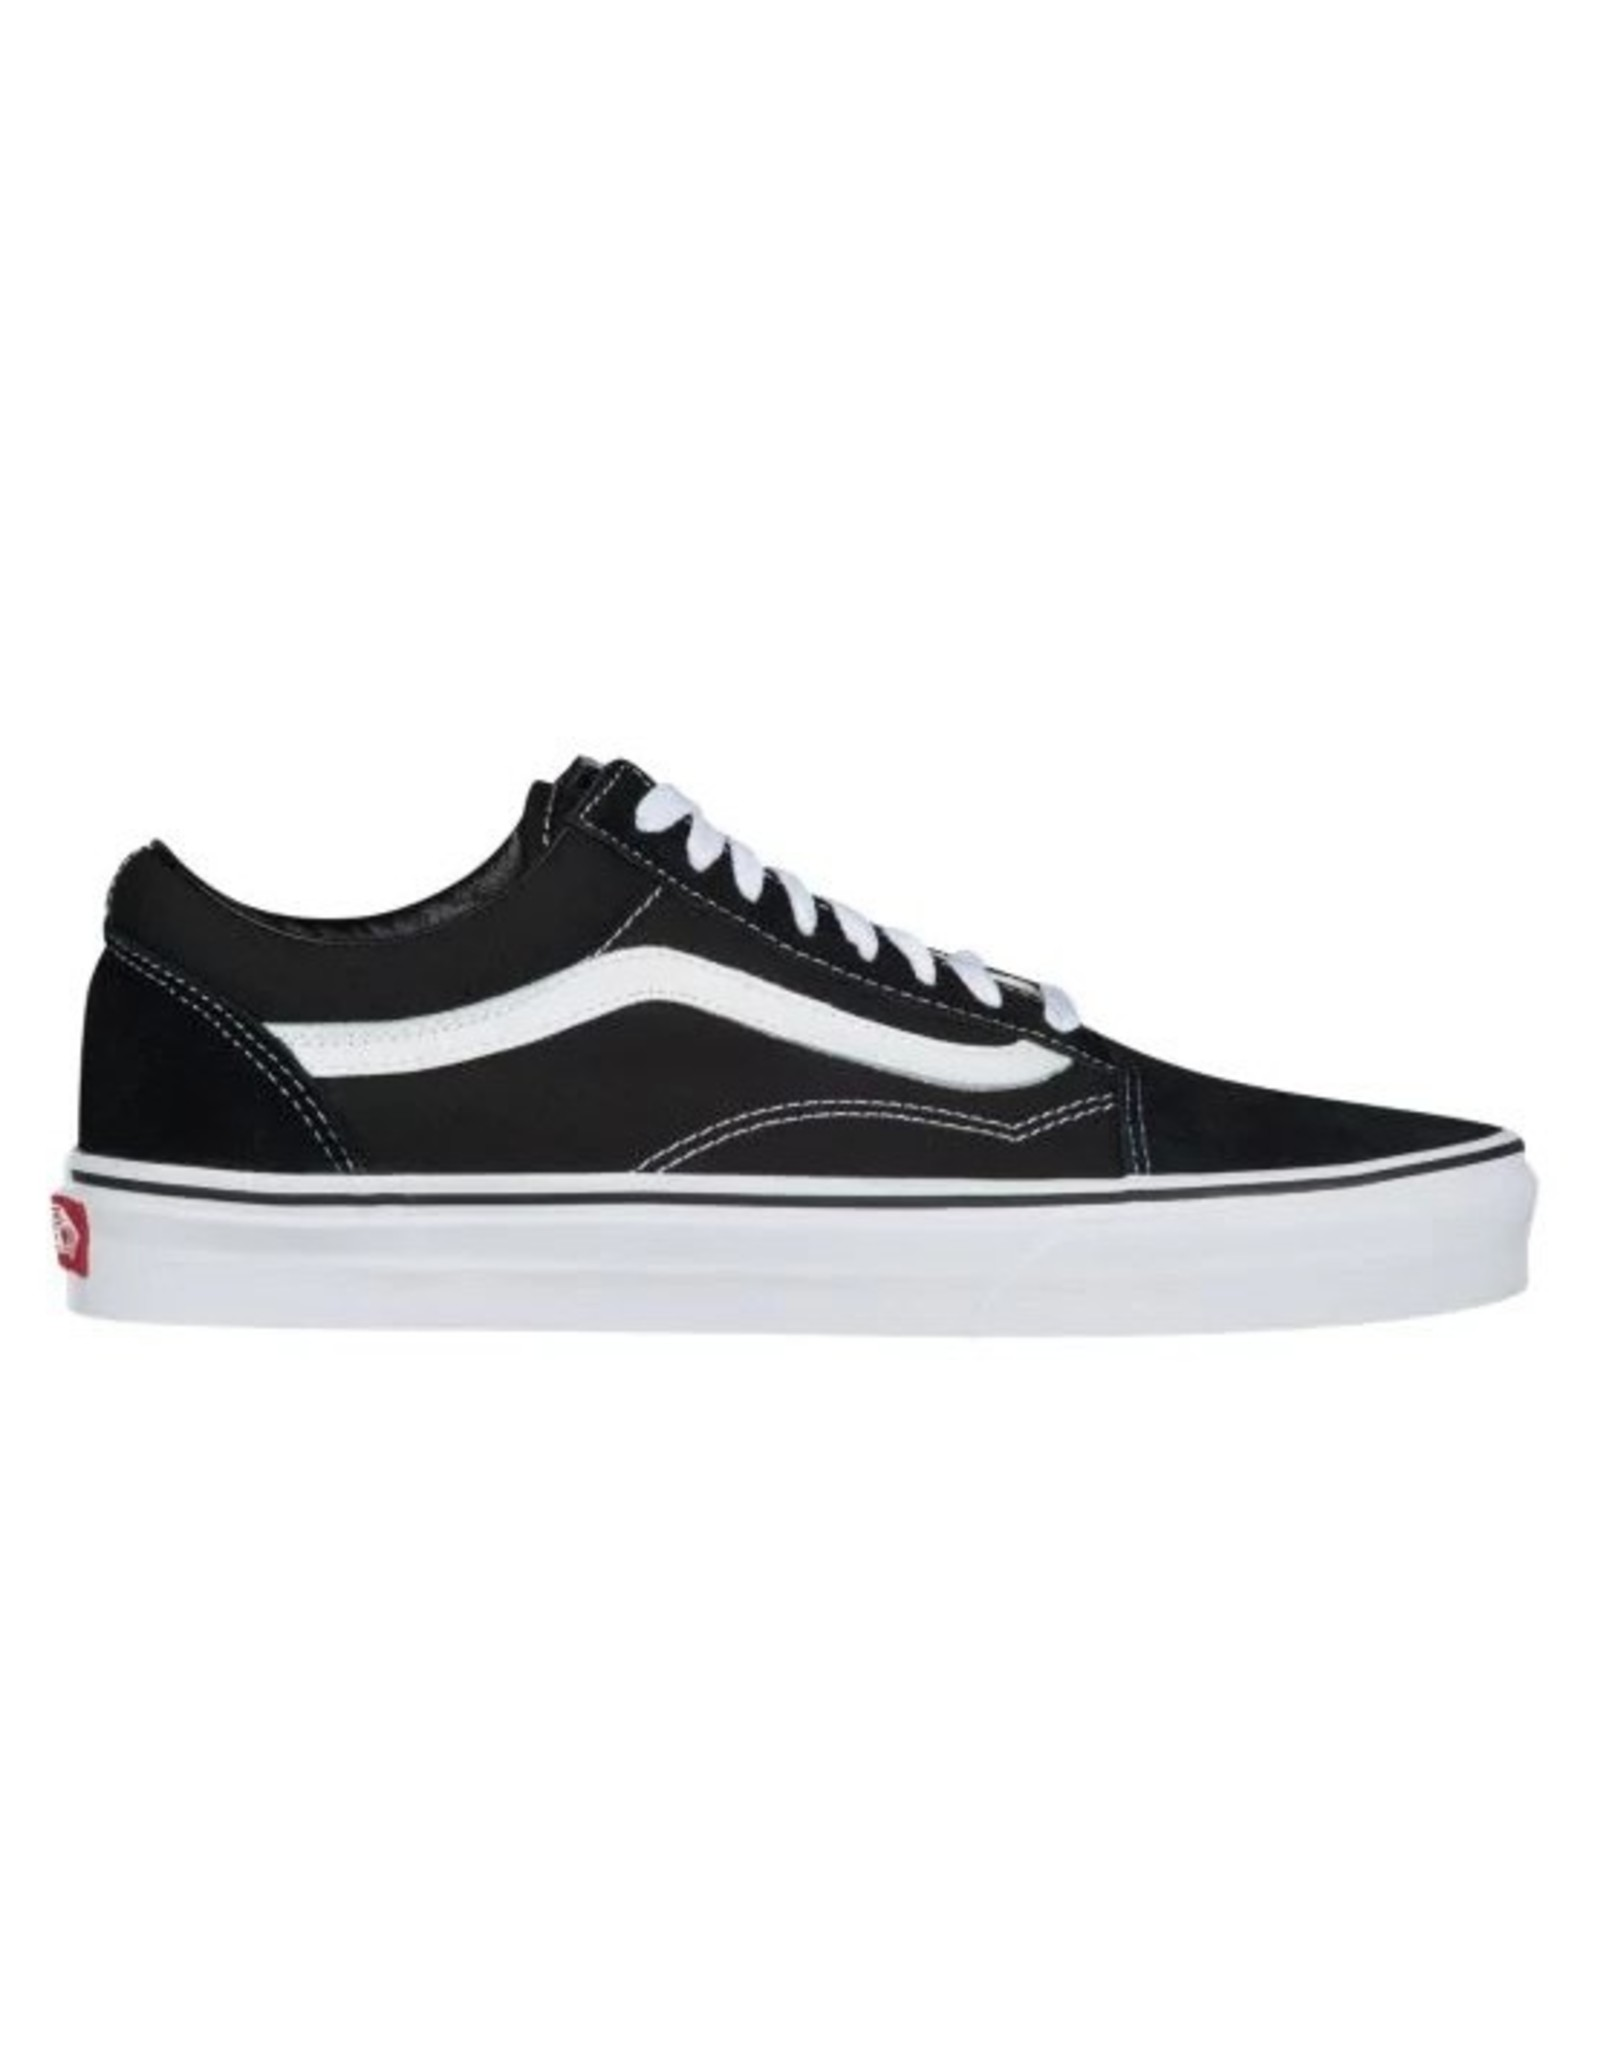 UNIFORM Vans Old Skool, U.A. Shoe - P-25963